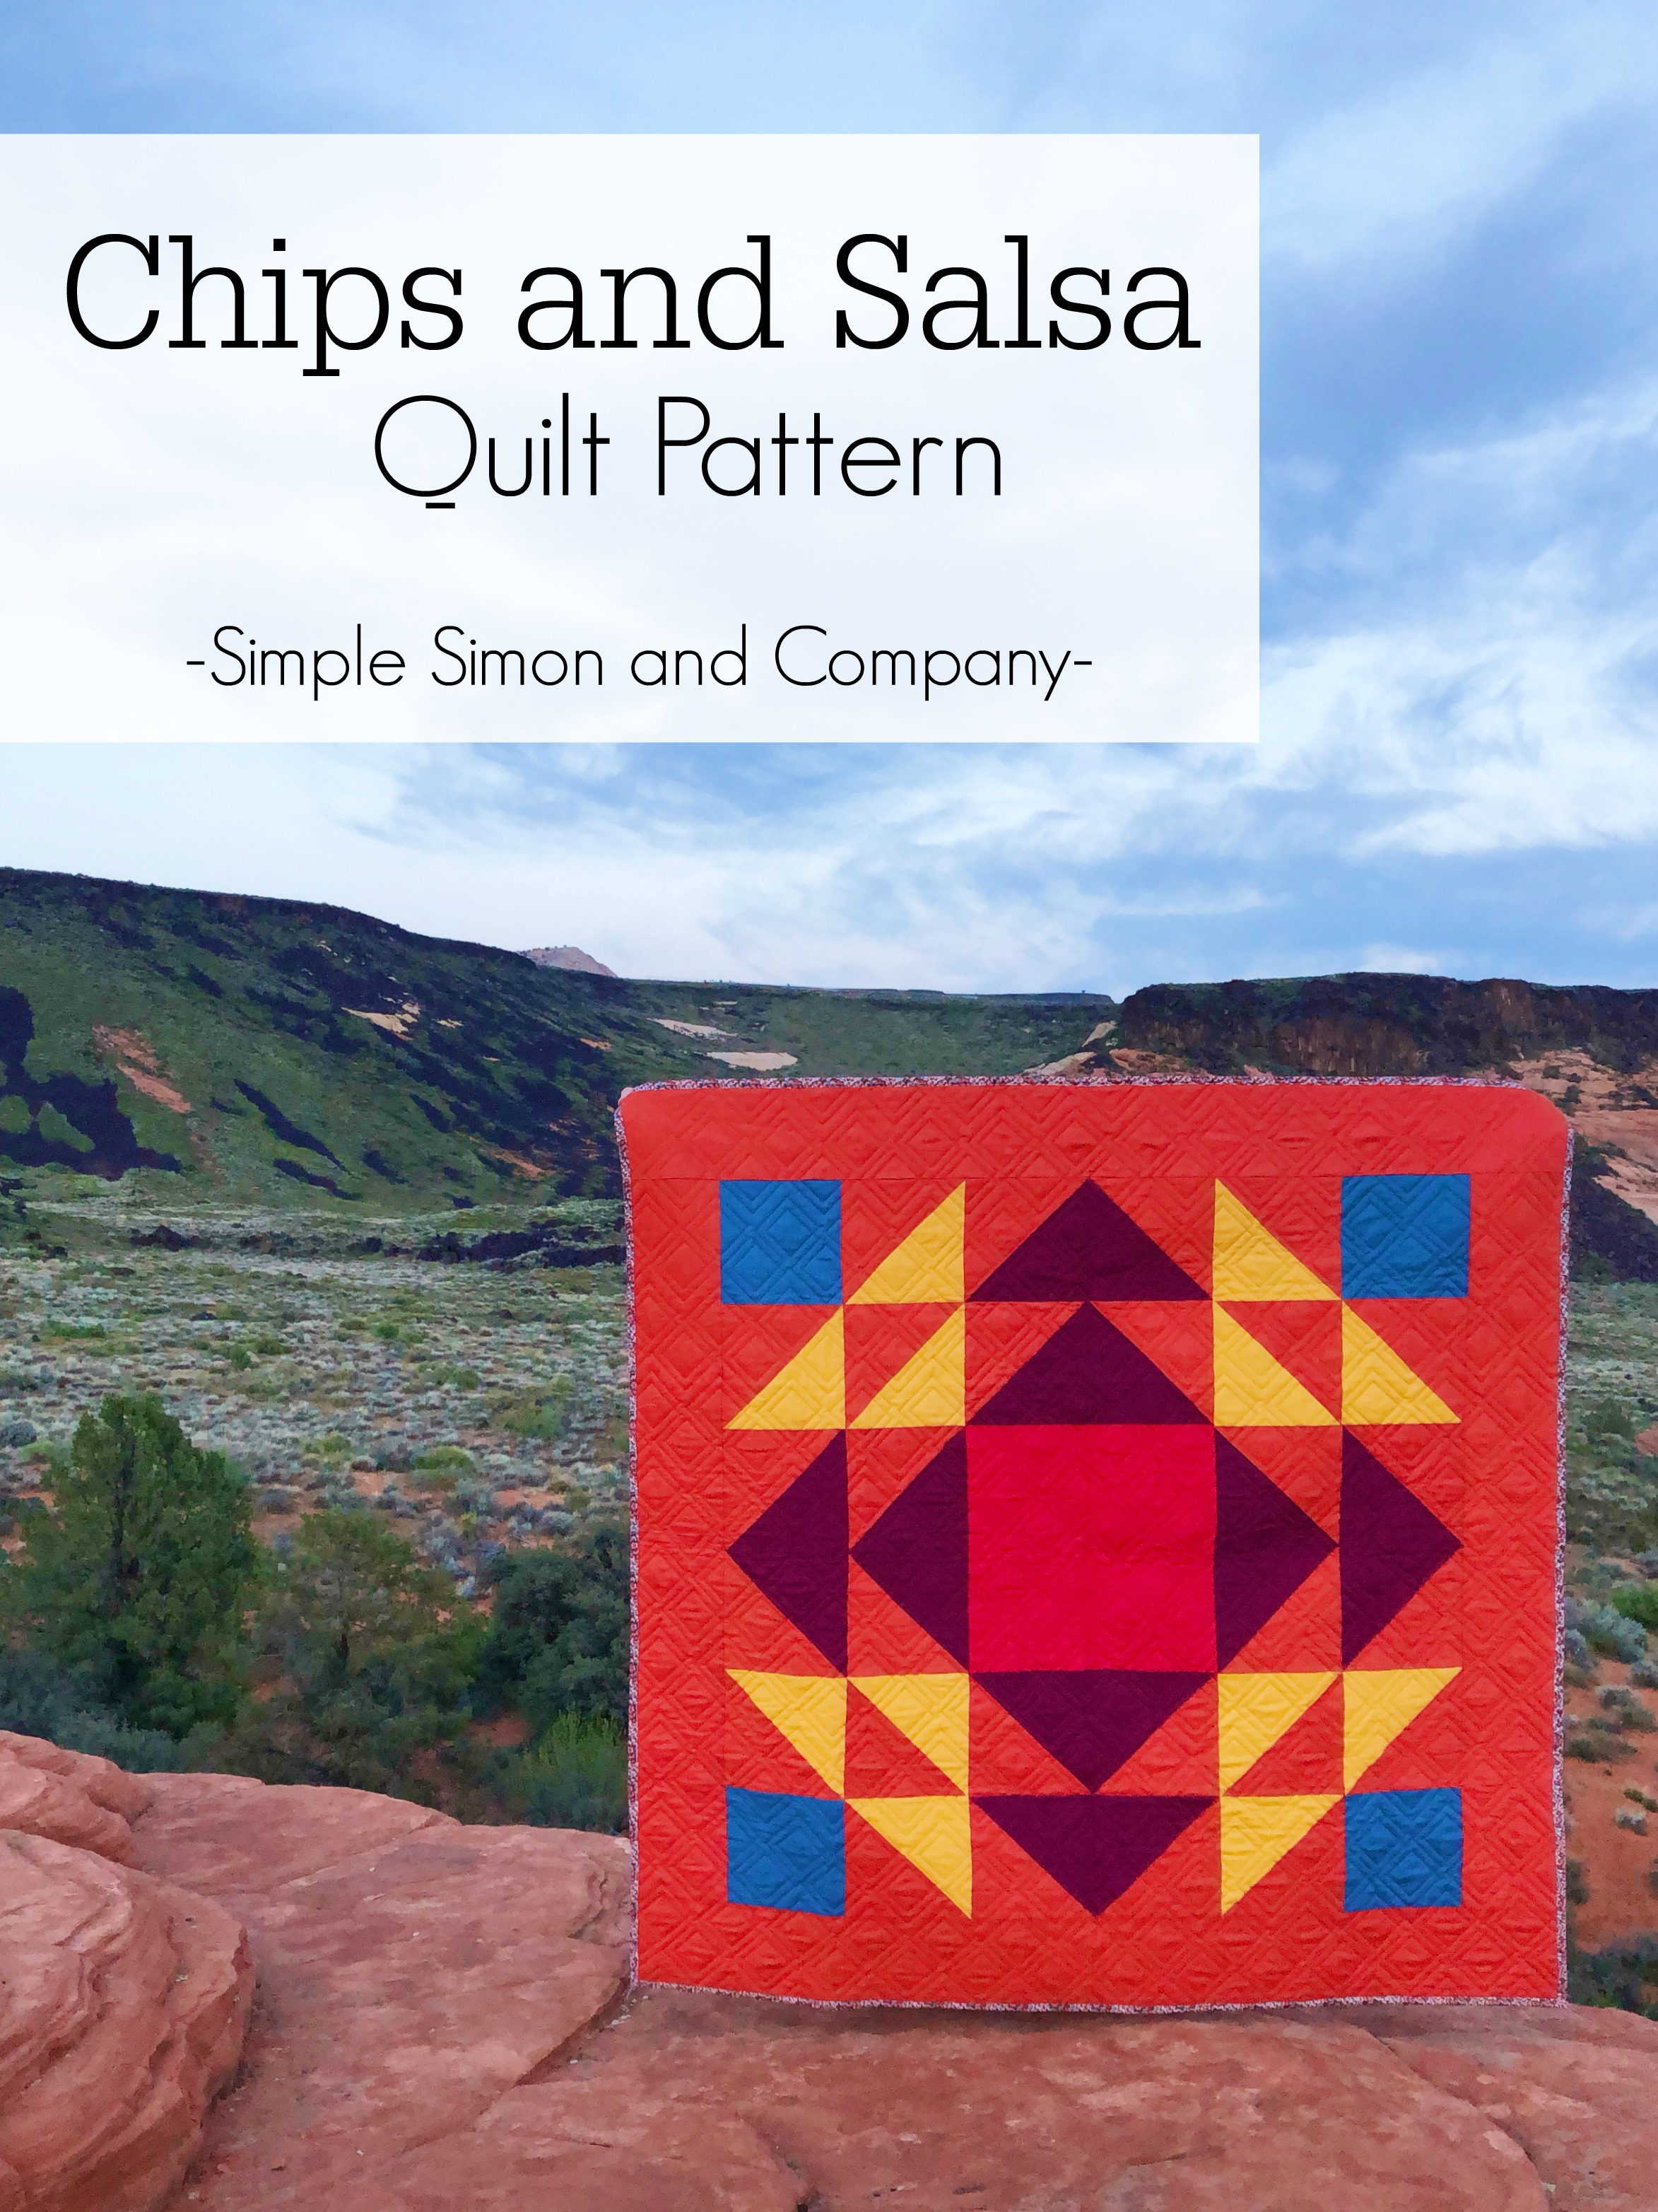 The Chips and Salsa Quilt Pattern - Simple Simon and Company